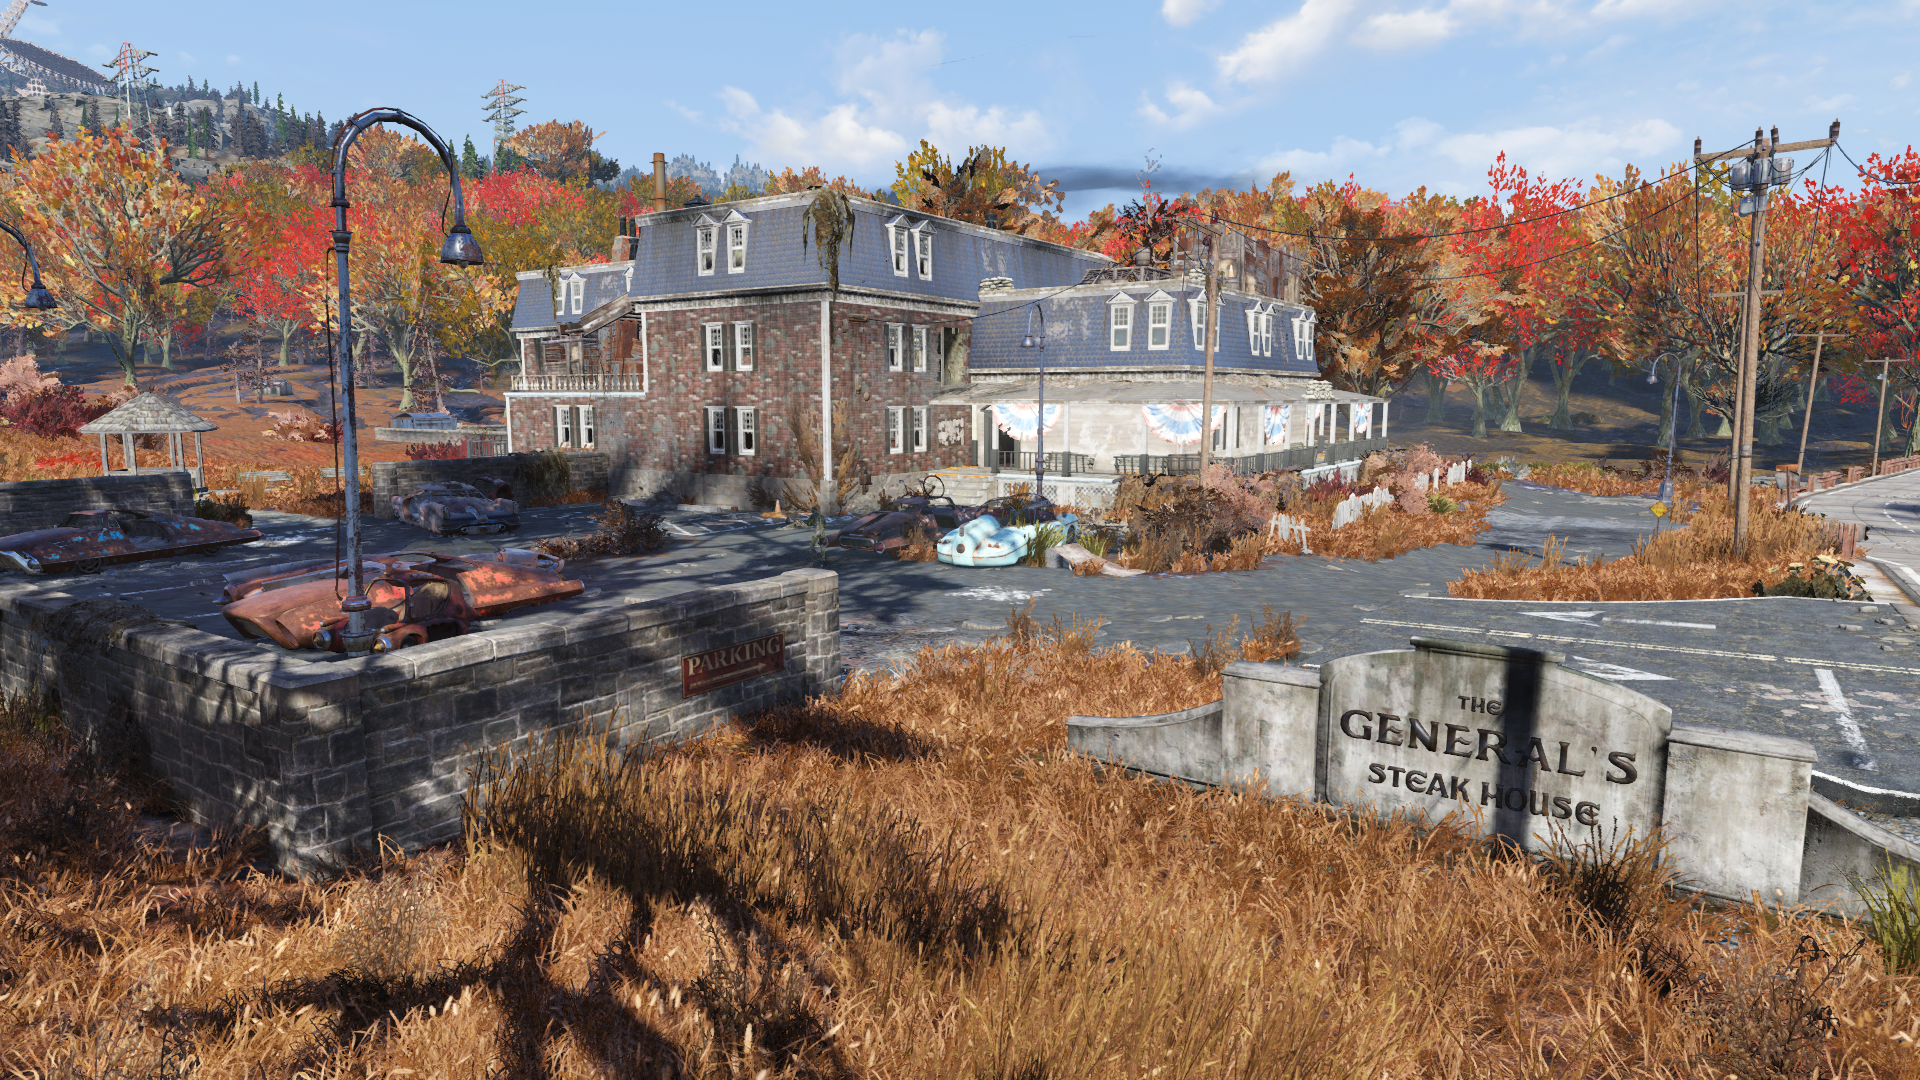 The General's Steakhouse | Fallout Wiki | FANDOM powered by